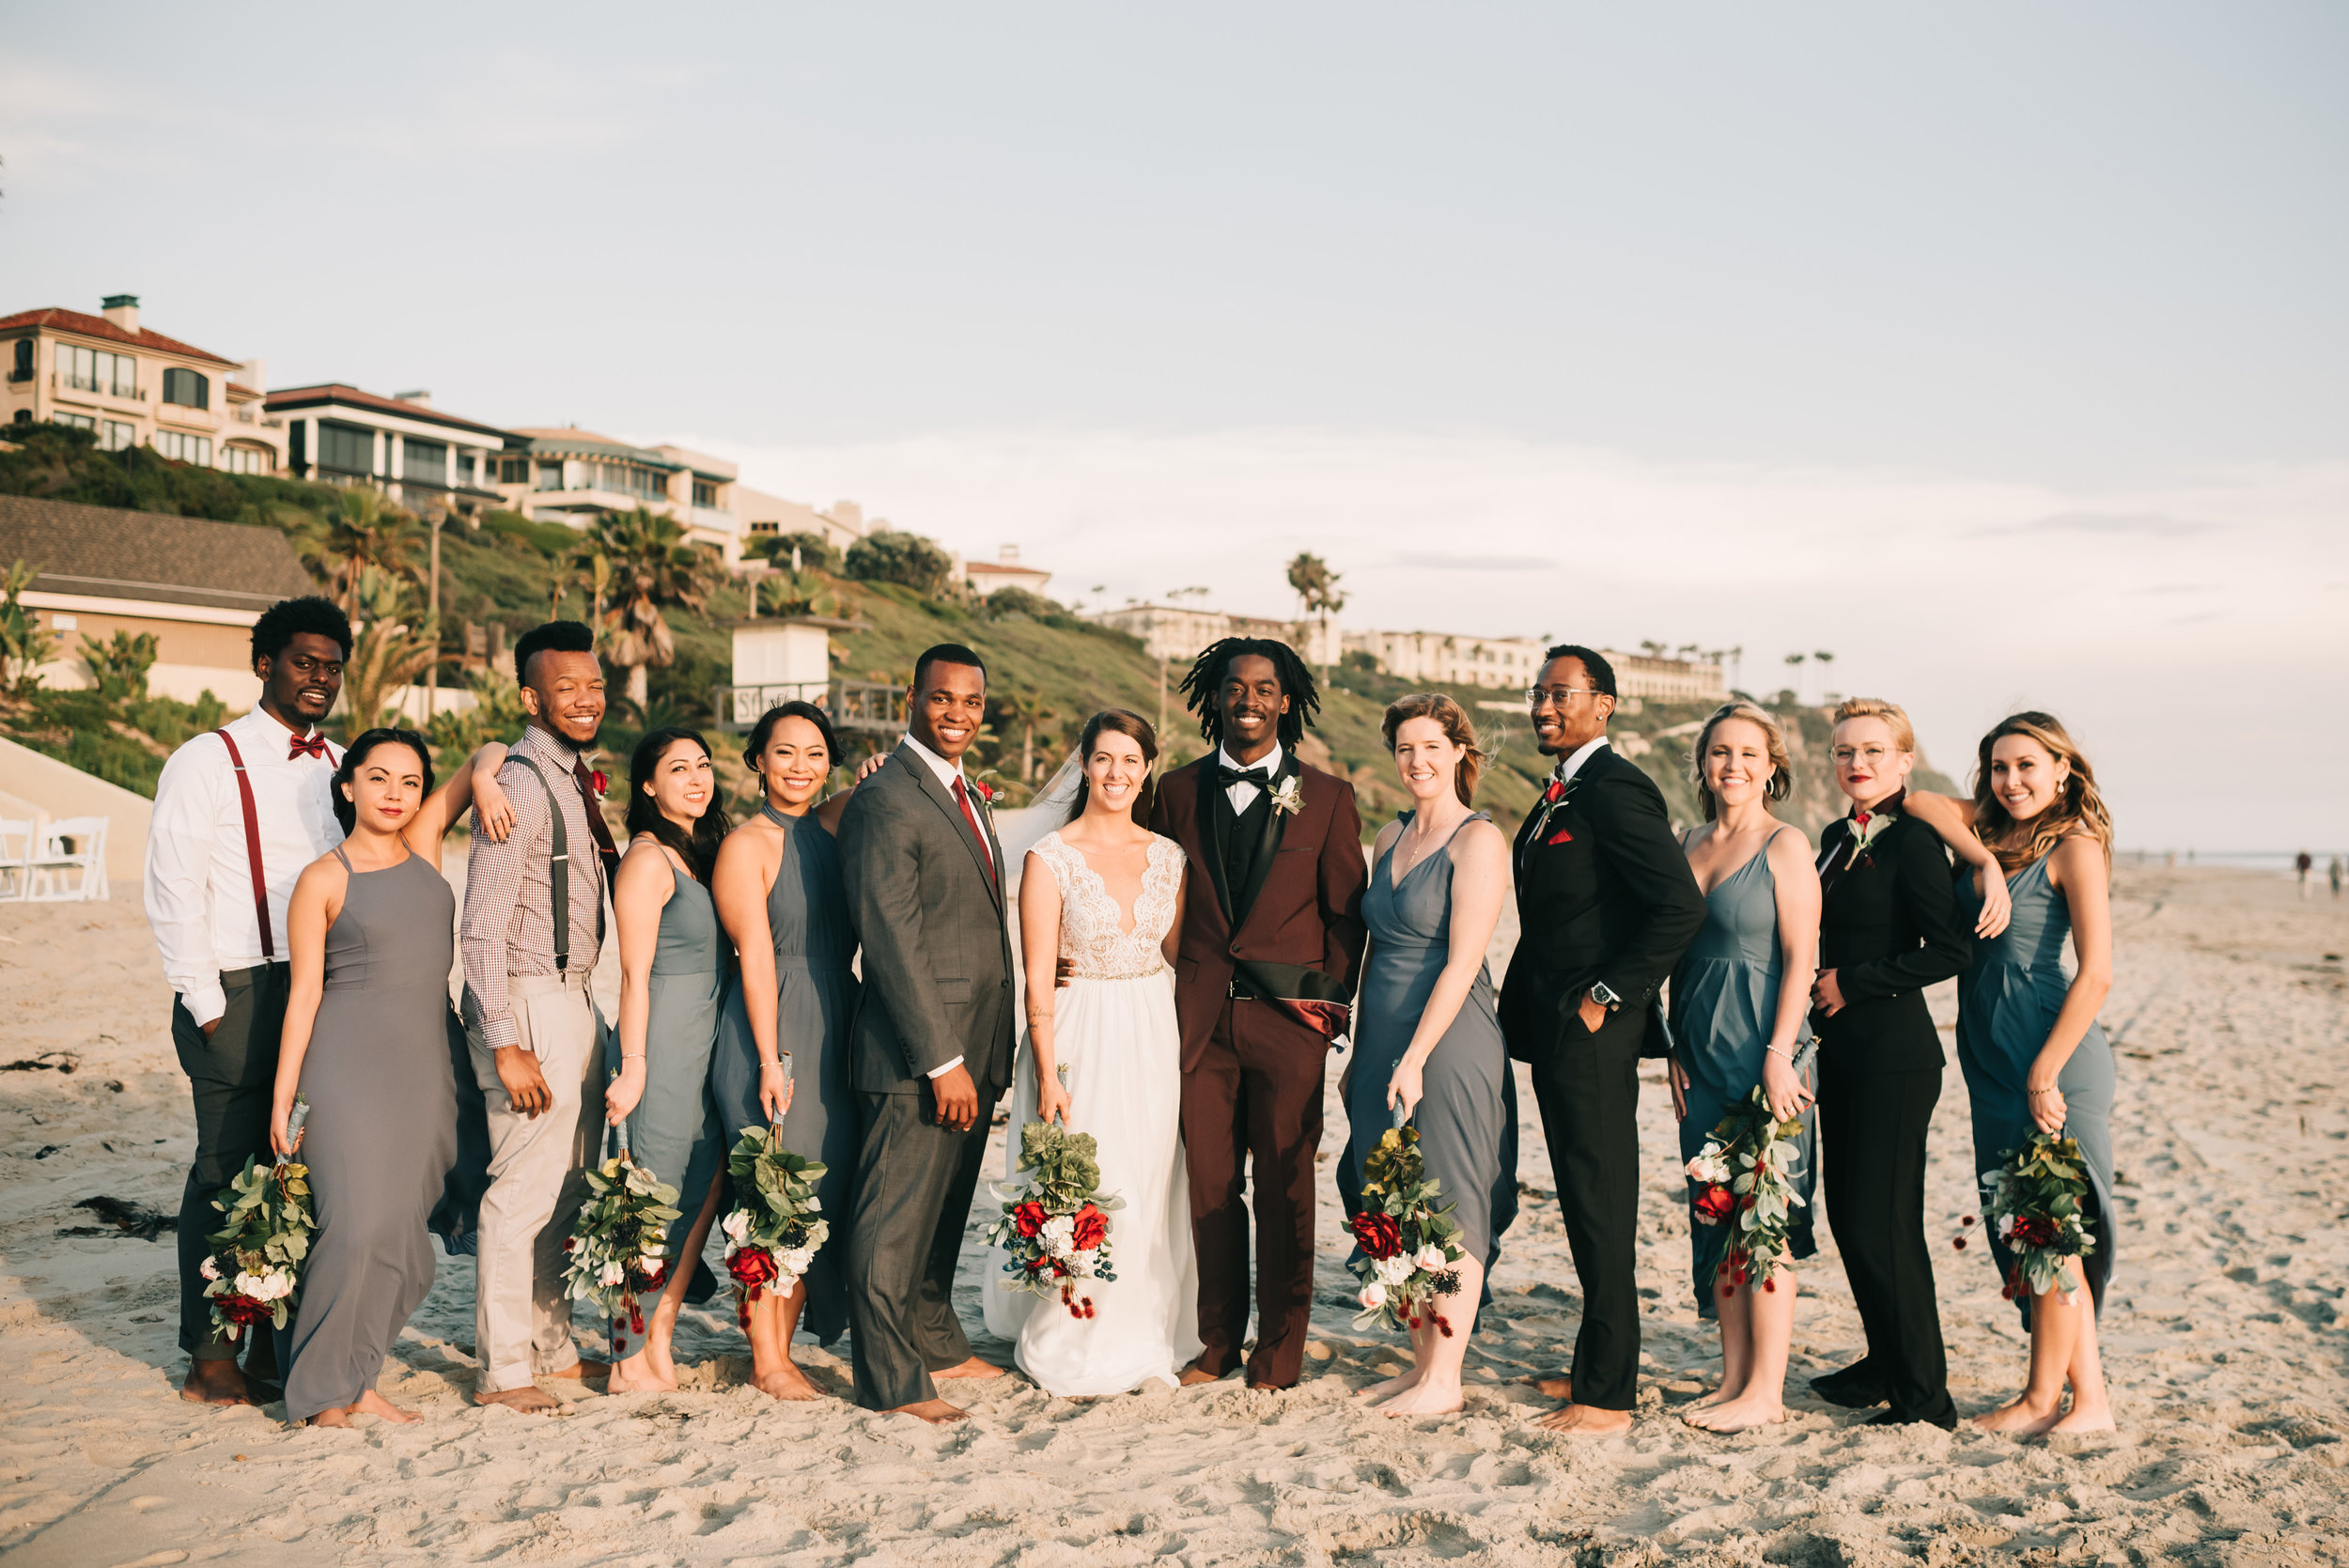 southern california laguna beach salt creek beach los angeles socal boho bay area akland san francisco engagement wedding nontraditional fun creative eclectic photographer magic-757.jpg